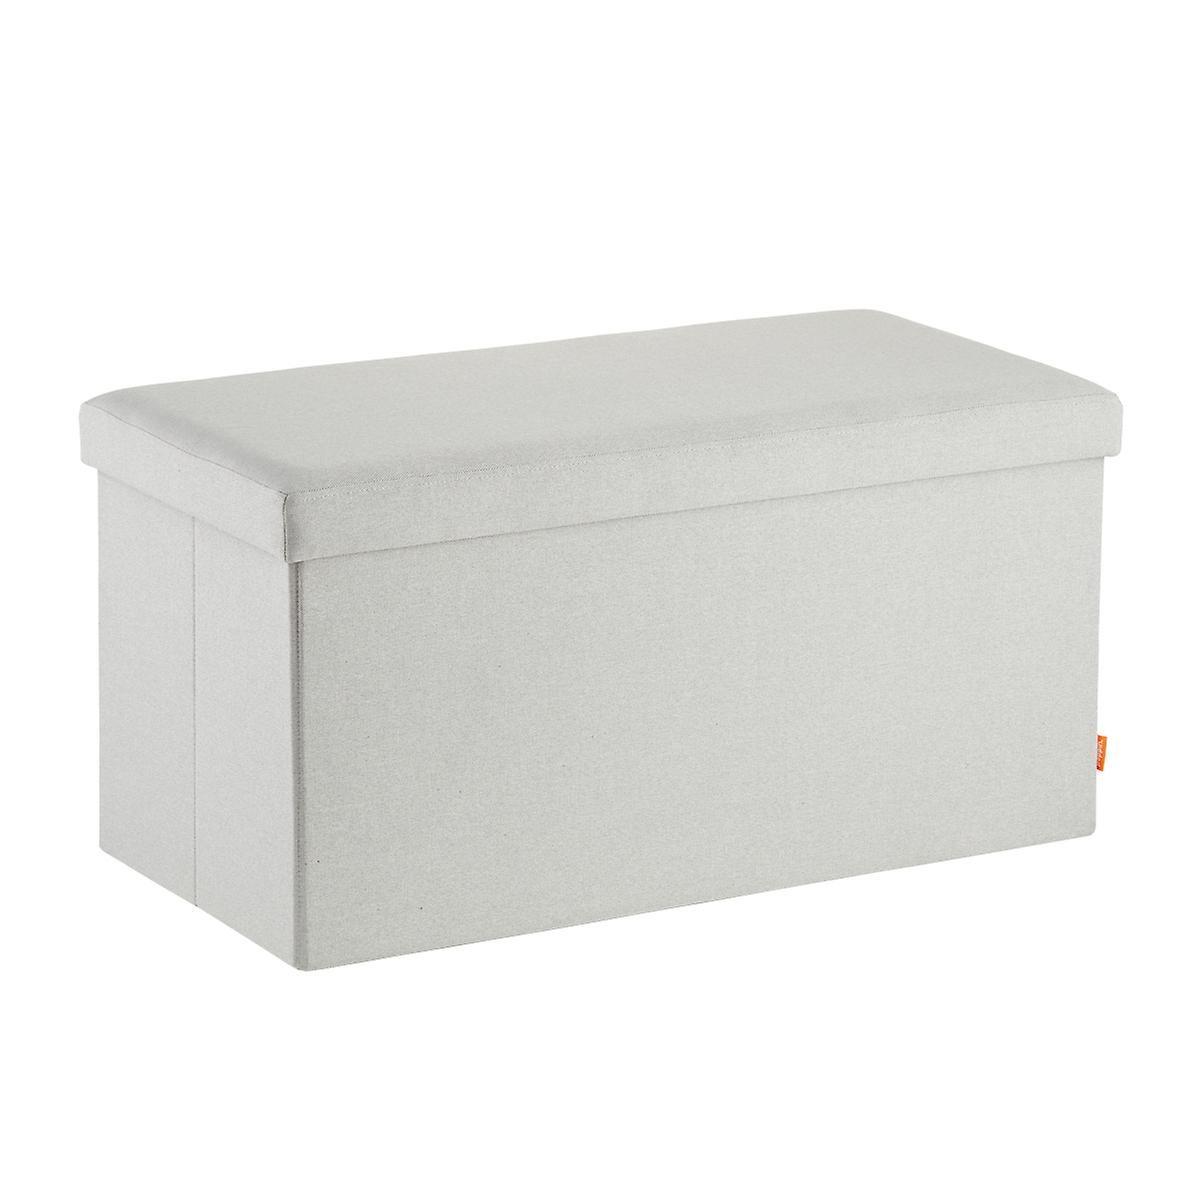 Light grey poppin box bench the container store Gray storage bench